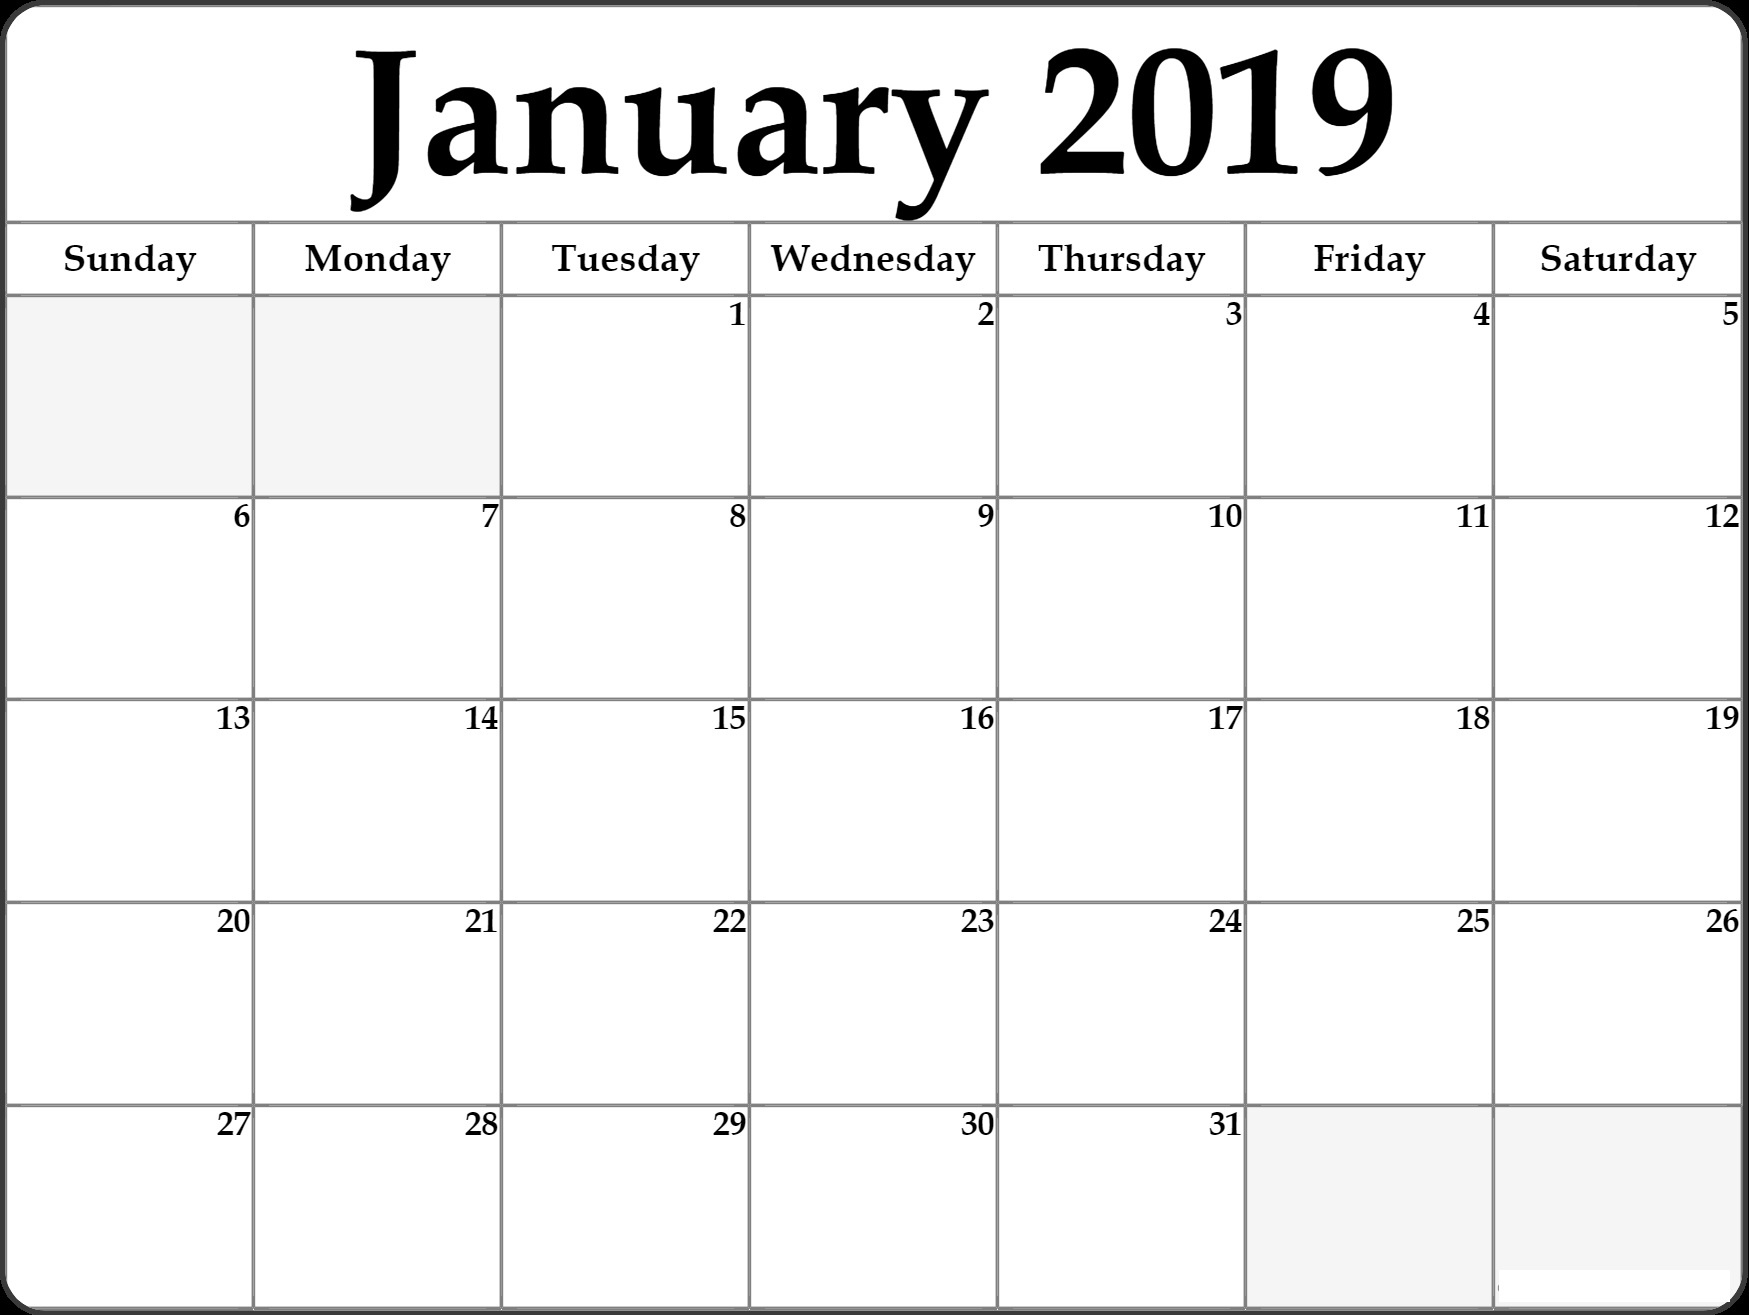 January 2019 Calendar Template By Month